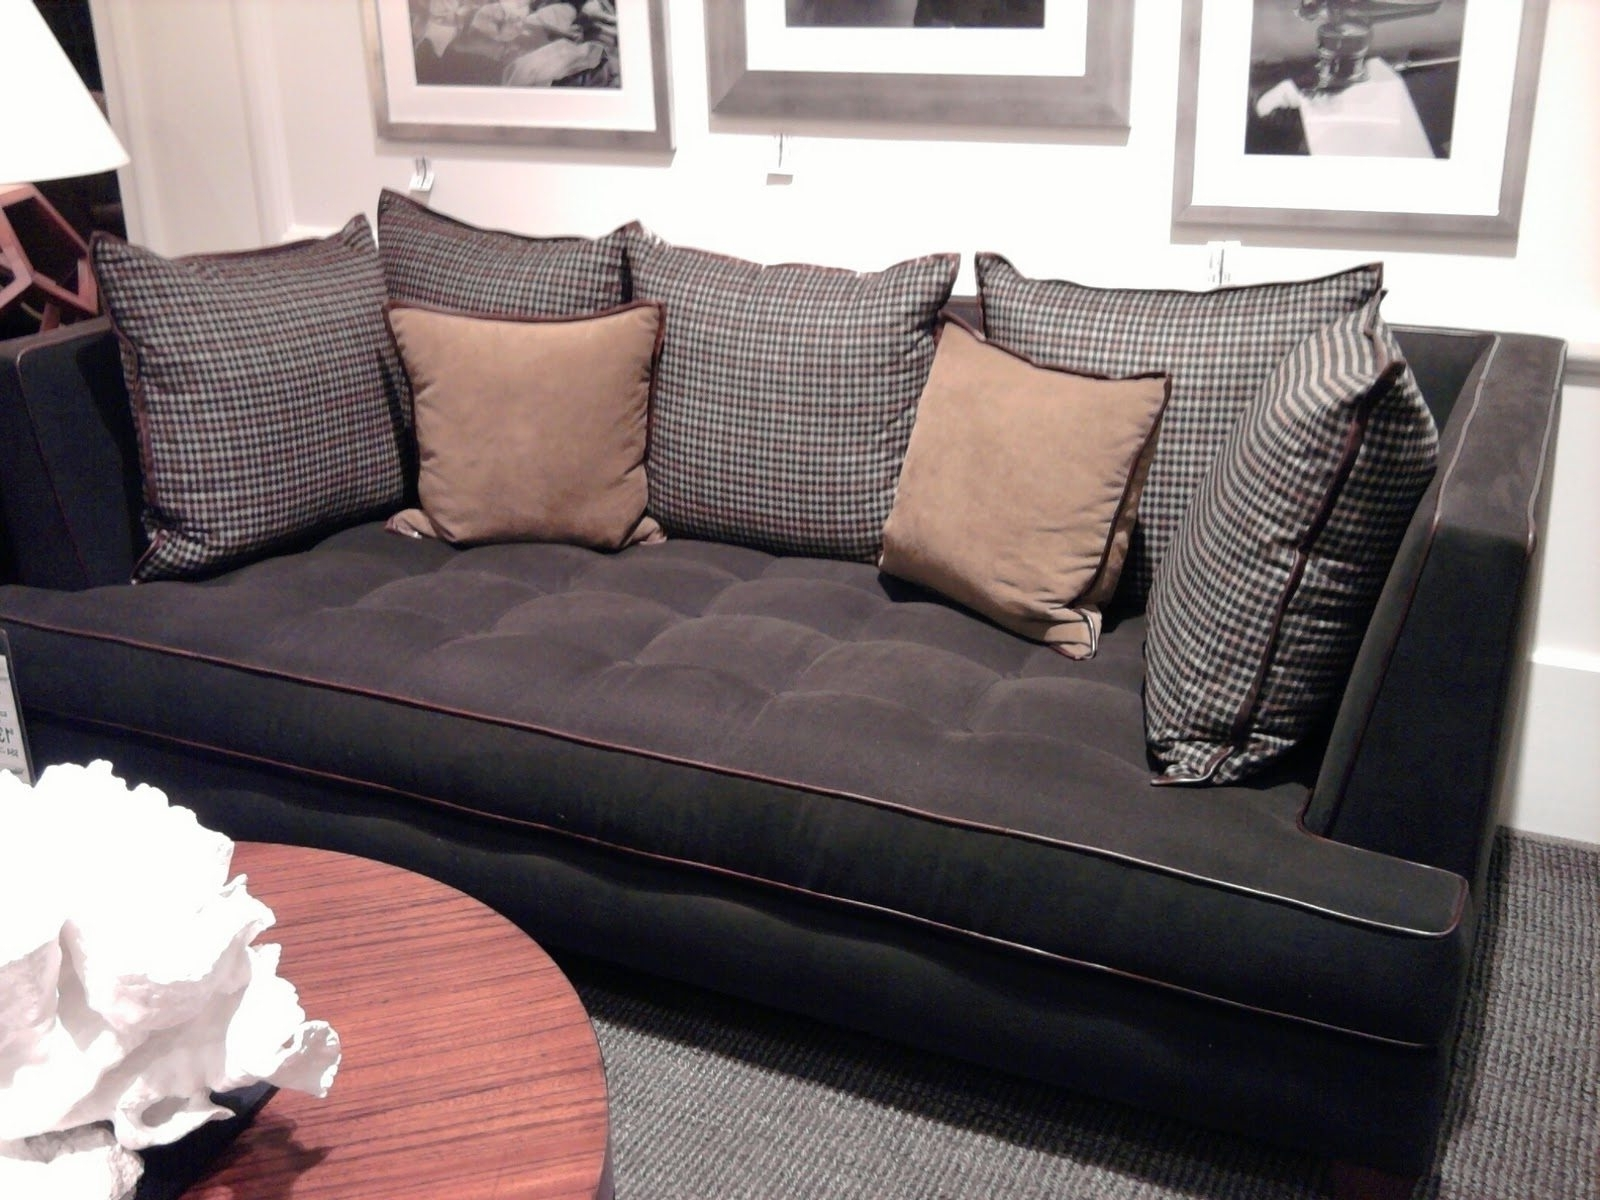 Awesome Deep Couches Design — Cabinets, Beds, Sofas And Regarding Current Wide Sofa Chairs (View 5 of 15)